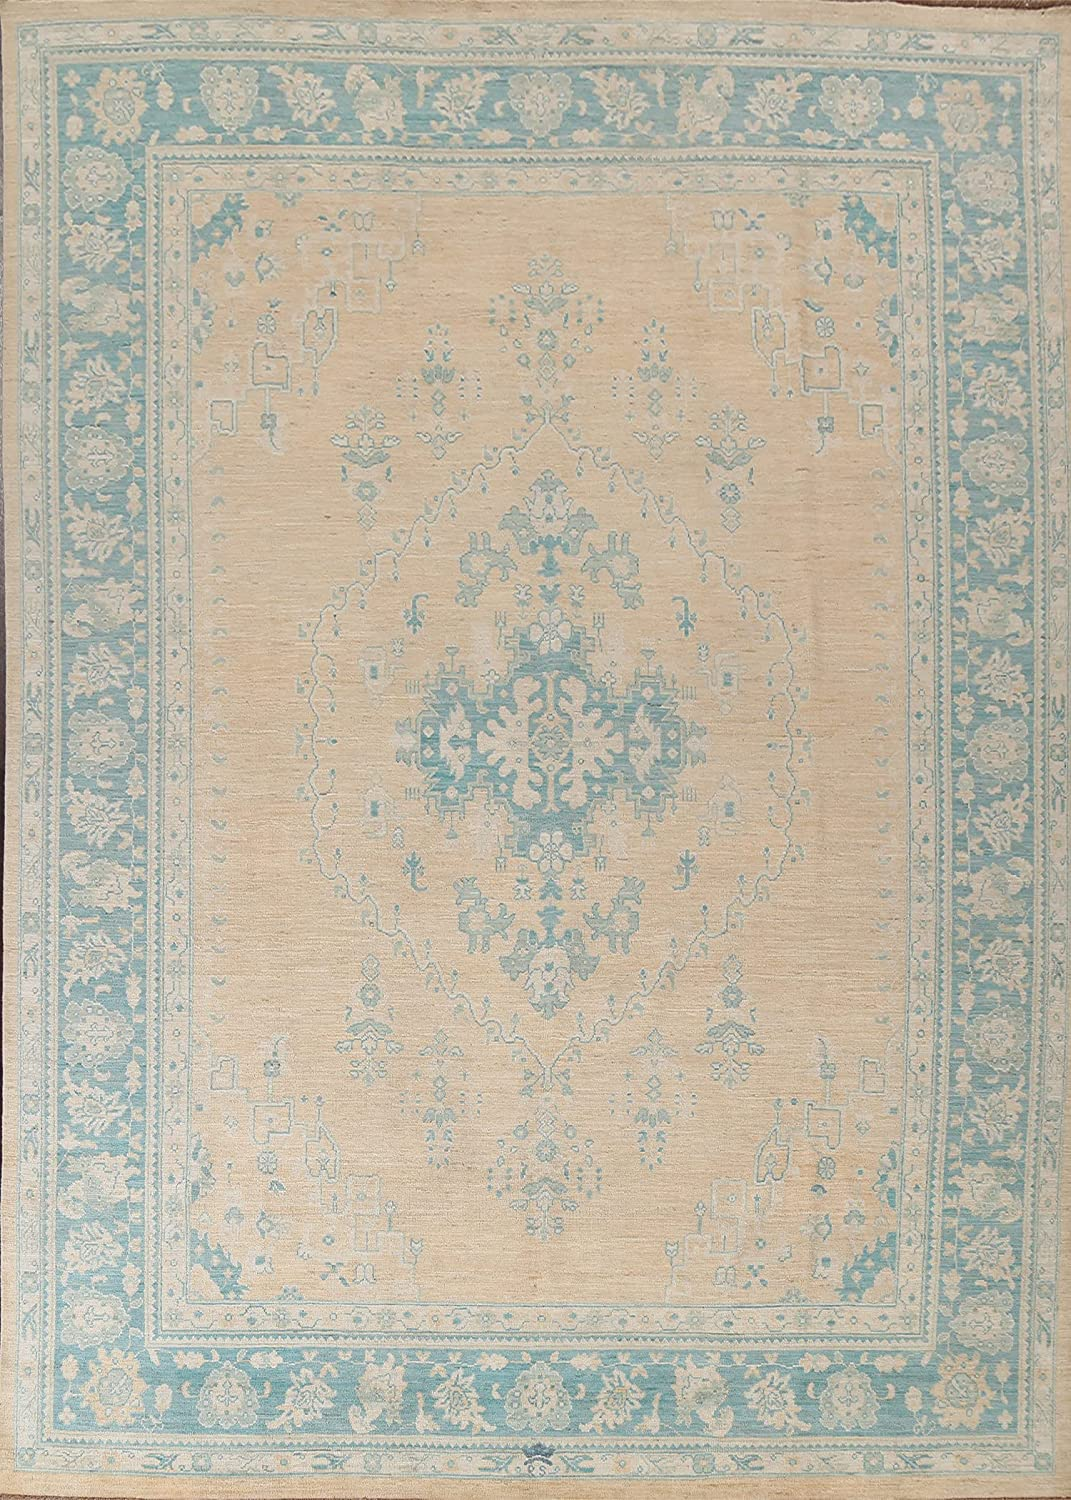 Peach Floral Vegetable Dye Muted Oushak Wool Turkish Rug Fashionable Gorgeous Ha Area